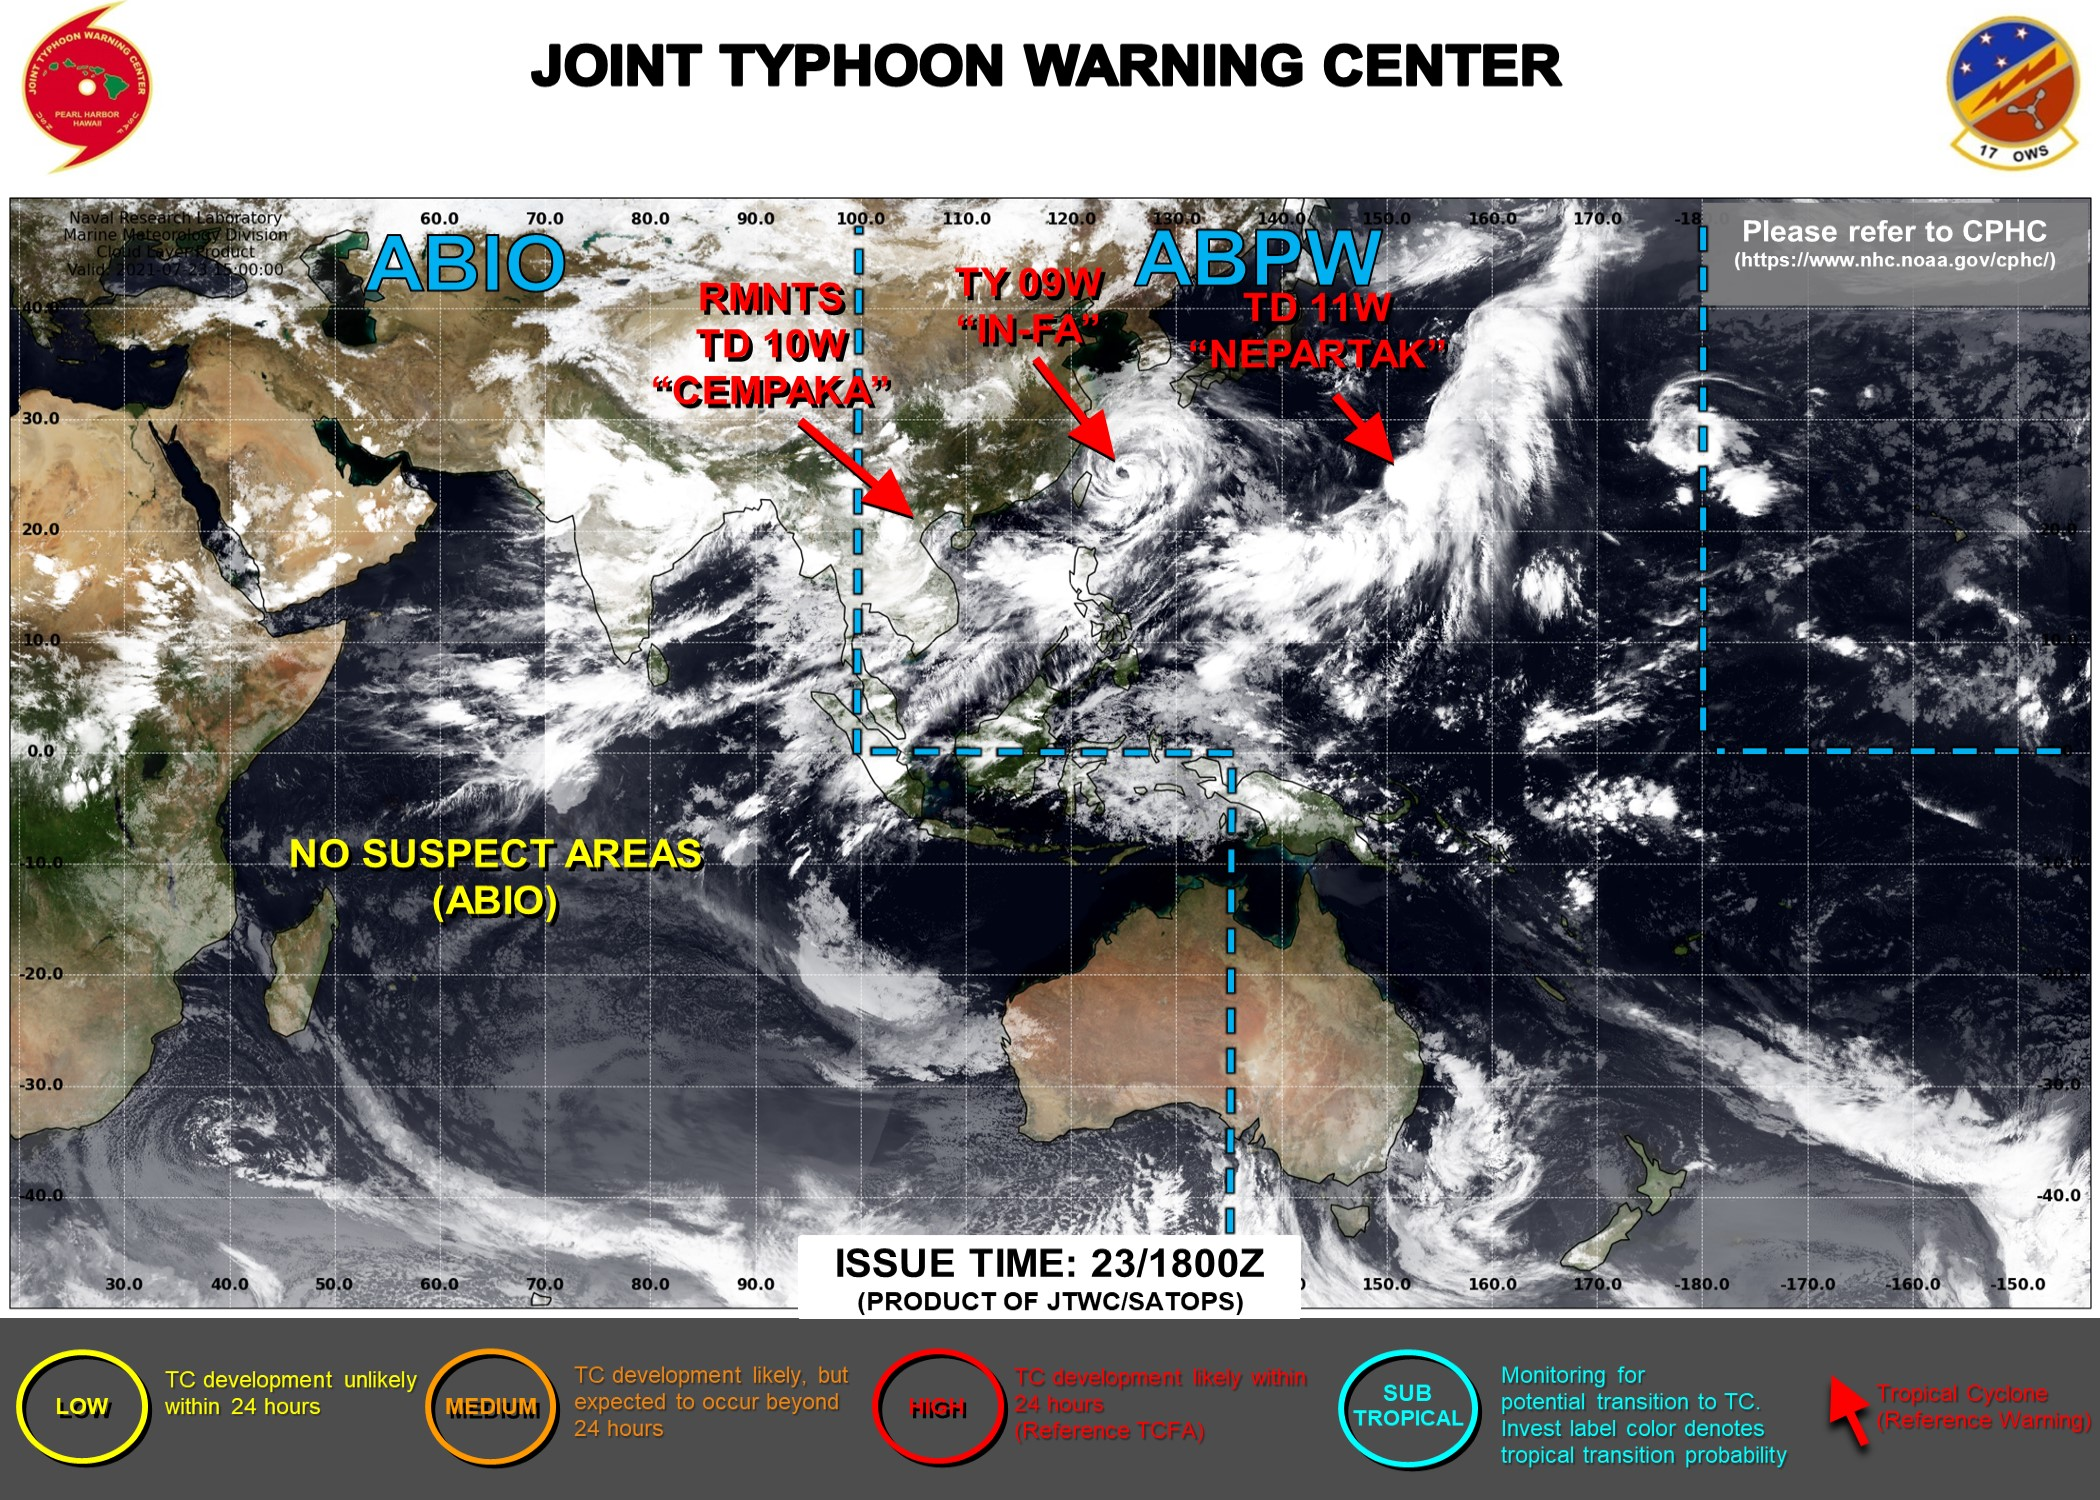 JTWC HAS BEEN ISSUING 6HOURLY WARNINGS ON 09W AND 11W. WARNING 21/FINAL WAS ISSUED ON 10W AT 23/15UTC. 3HOURLY SATELLITE BULLETINS ARE ISSUED ON THE 3 SYSTEMS.